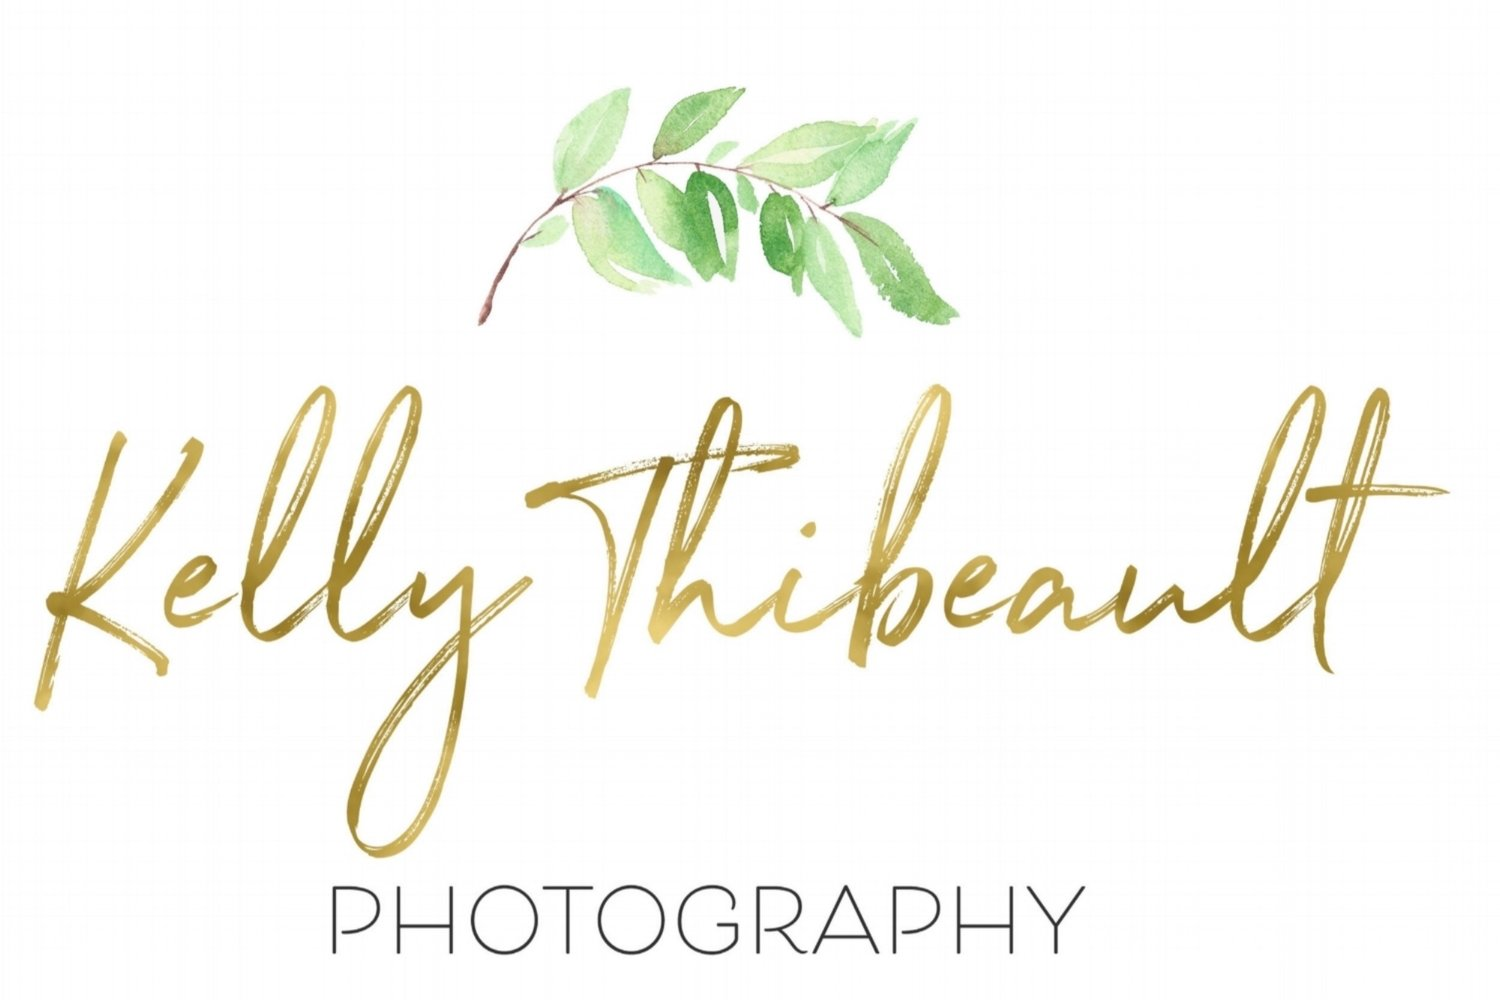 Kelly Thibeault Photography